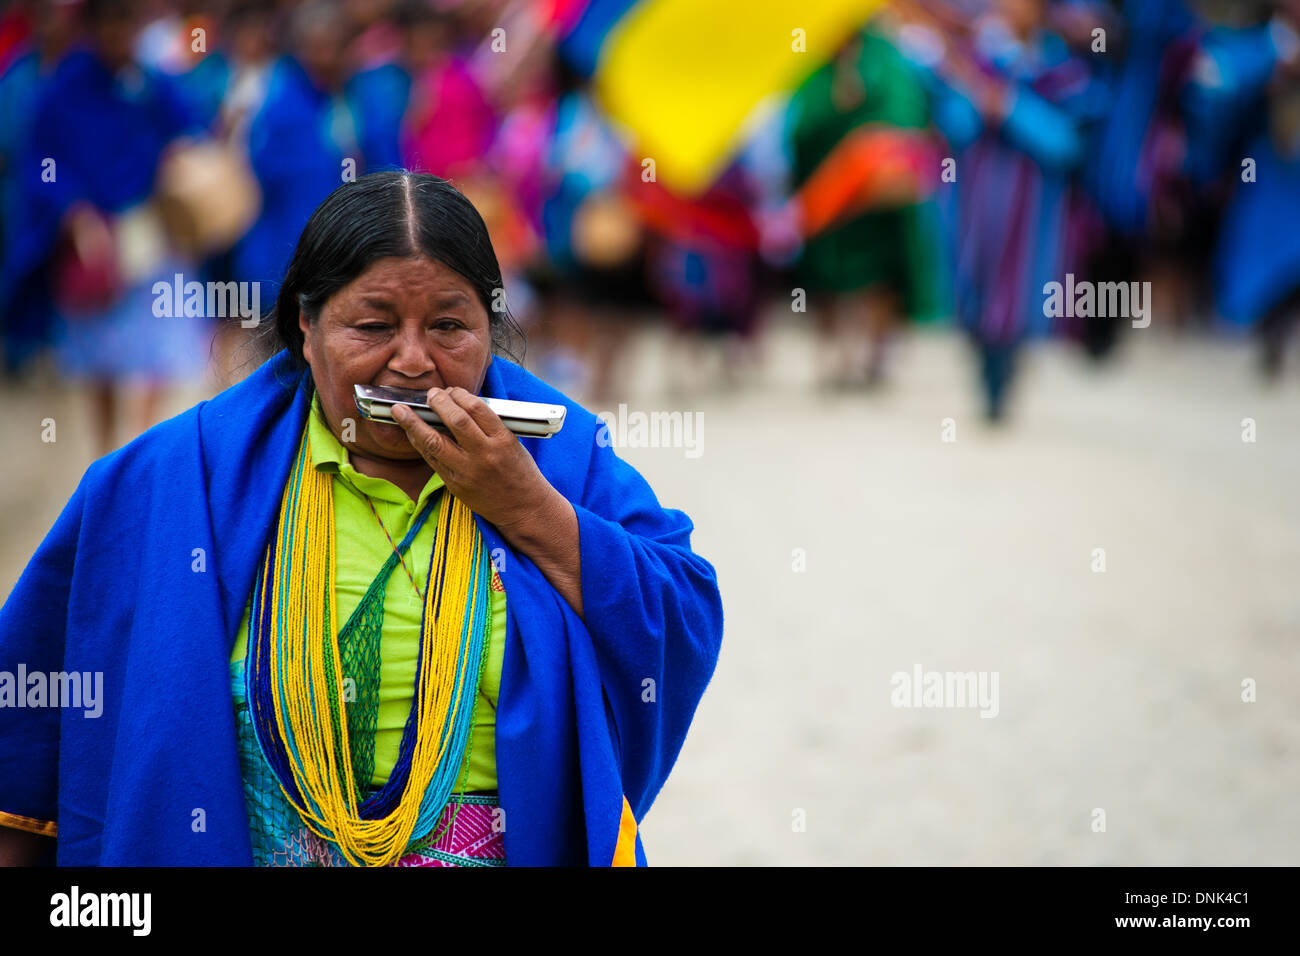 A native woman from the Kamentsá tribe plays harmonica during the Carnival of Forgiveness in Sibundoy, Colombia. - Stock Image